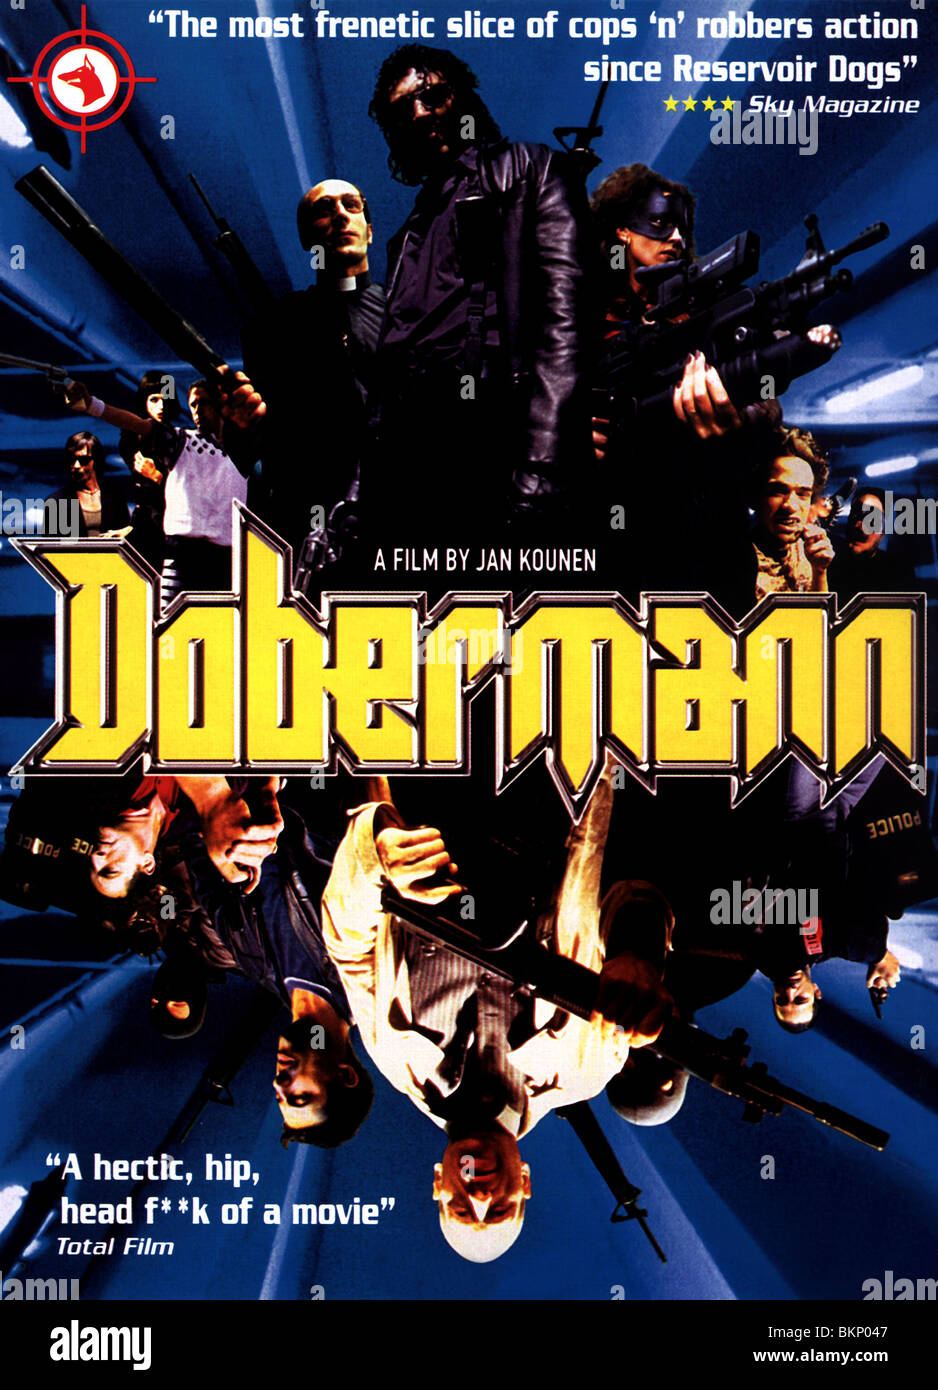 Dobermann 1997 full movie free download